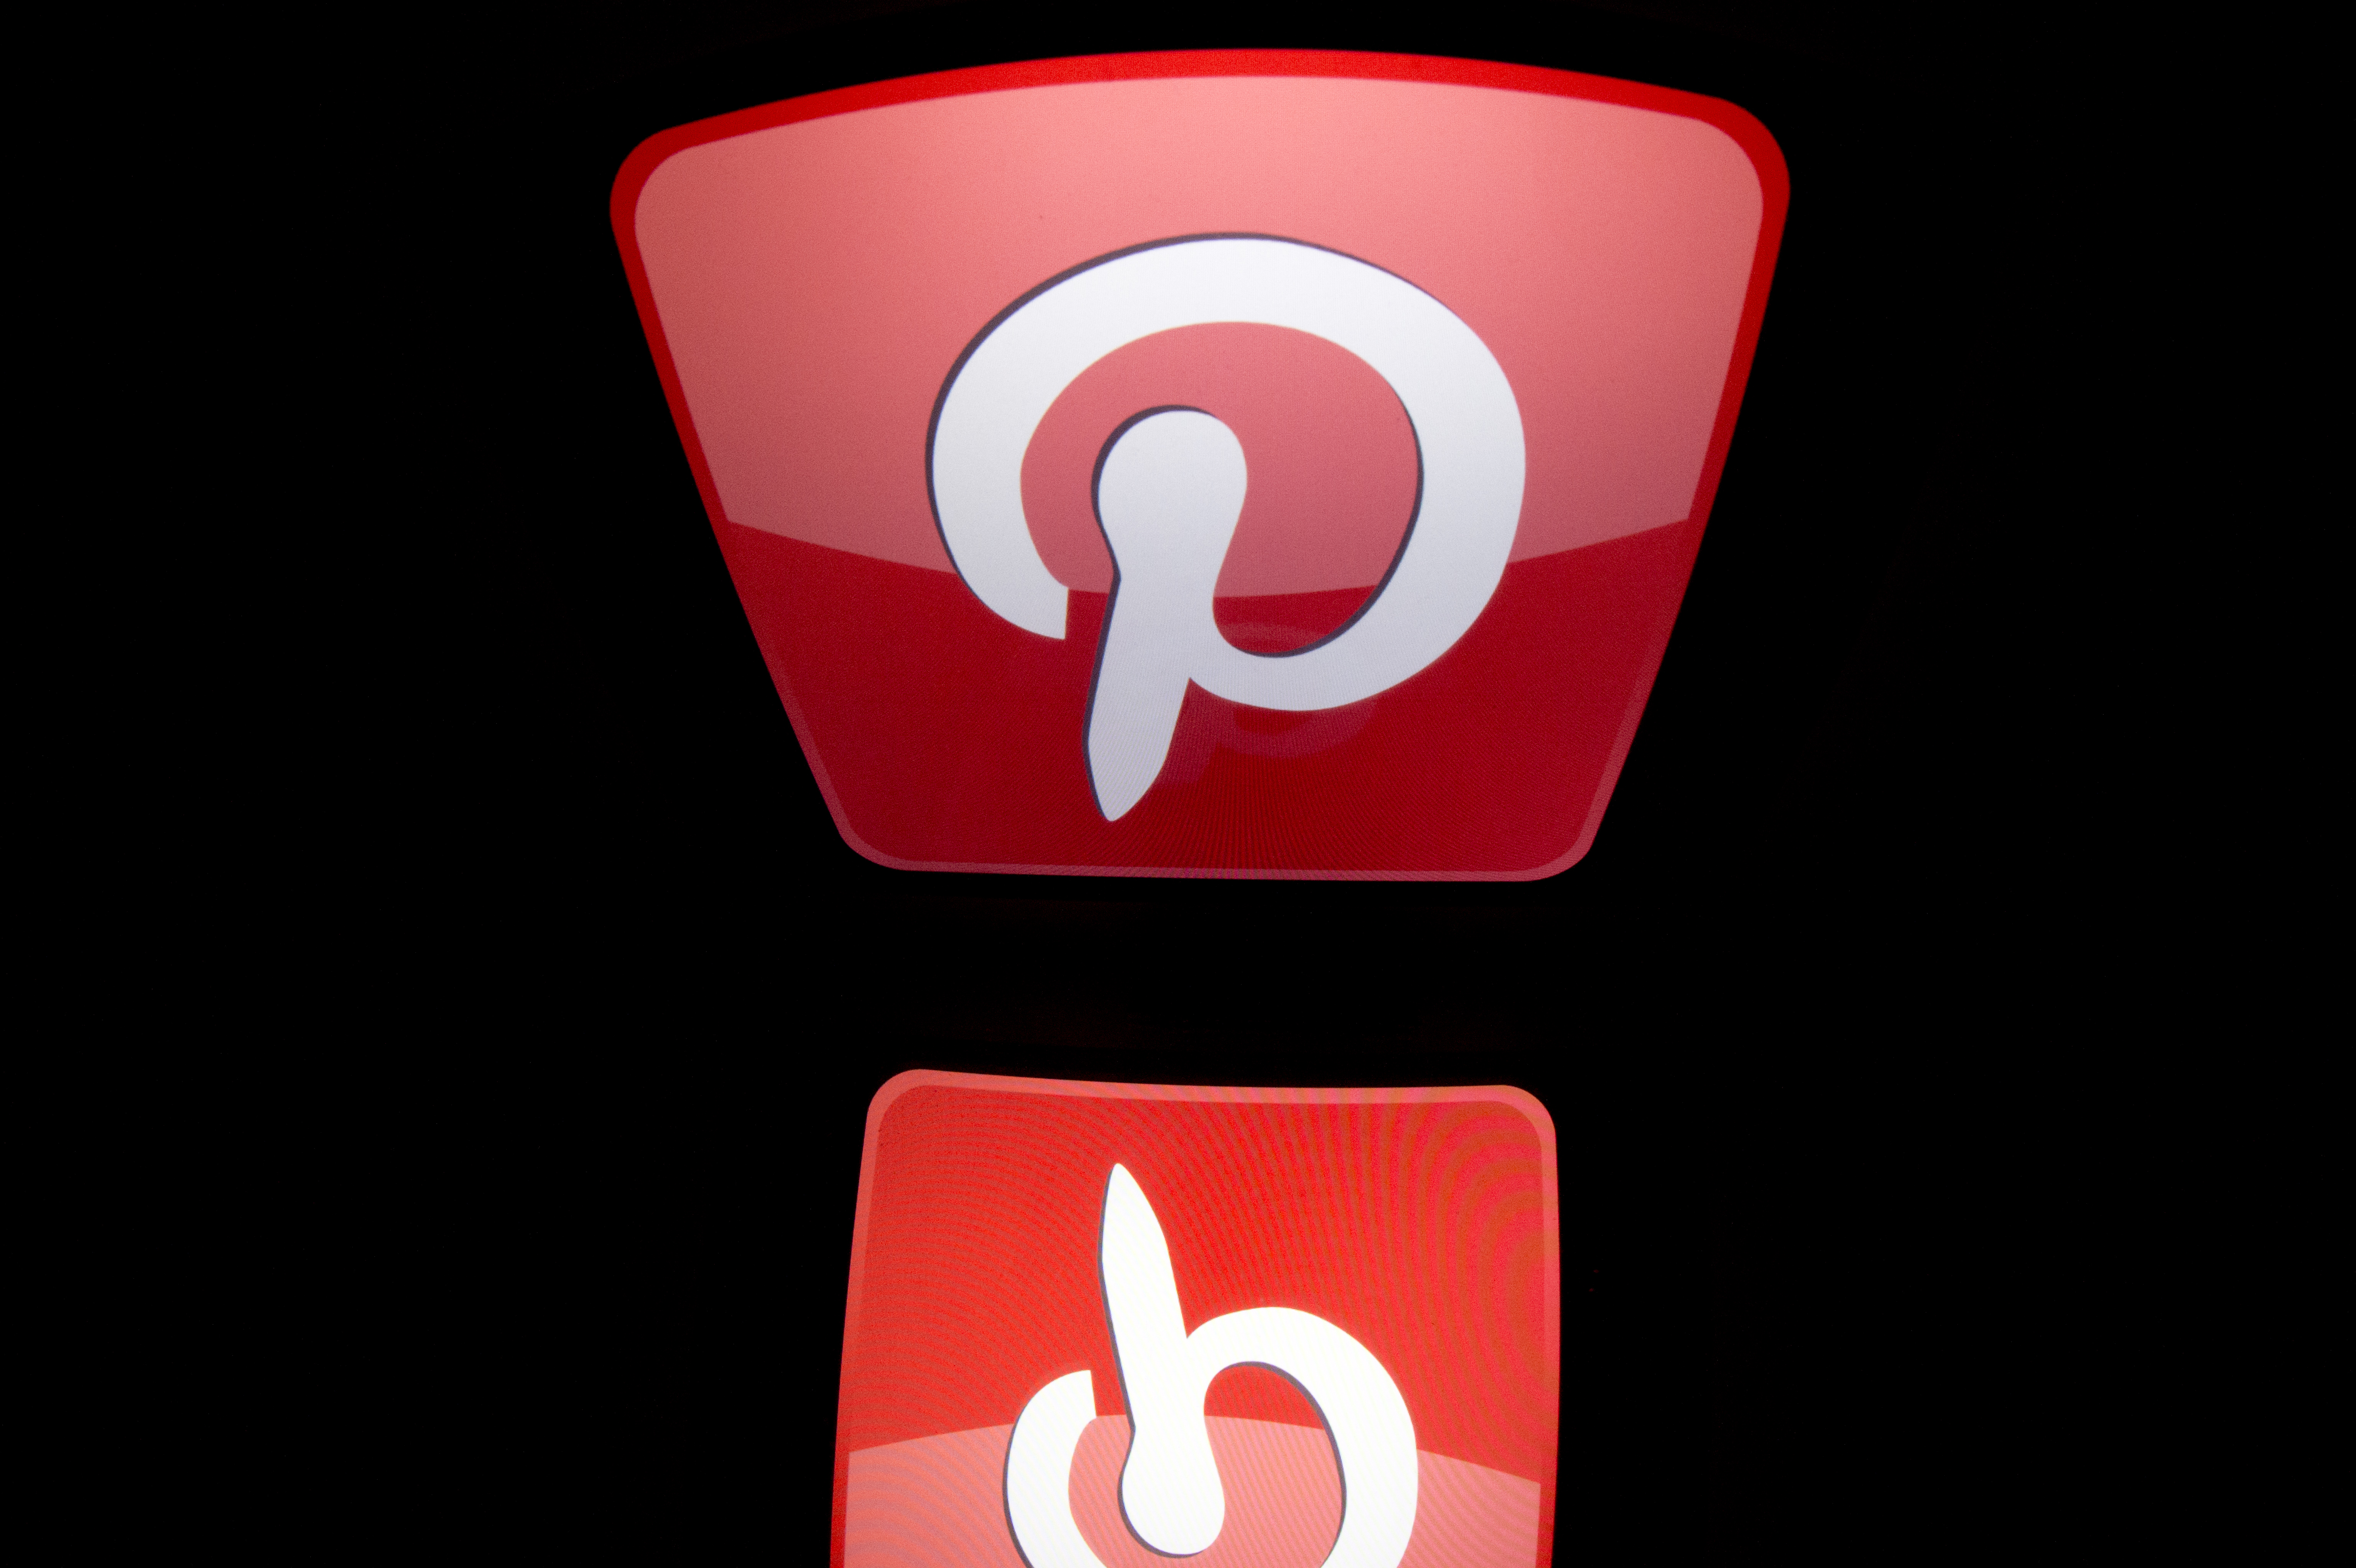 """The logo of mobile app """"Pinterest"""" is displayed on a tablet on January 2, 2014 in Paris.  AFP PHOTO / LIONEL BONAVENTURE / AFP PHOTO / LIONEL BONAVENTURE"""